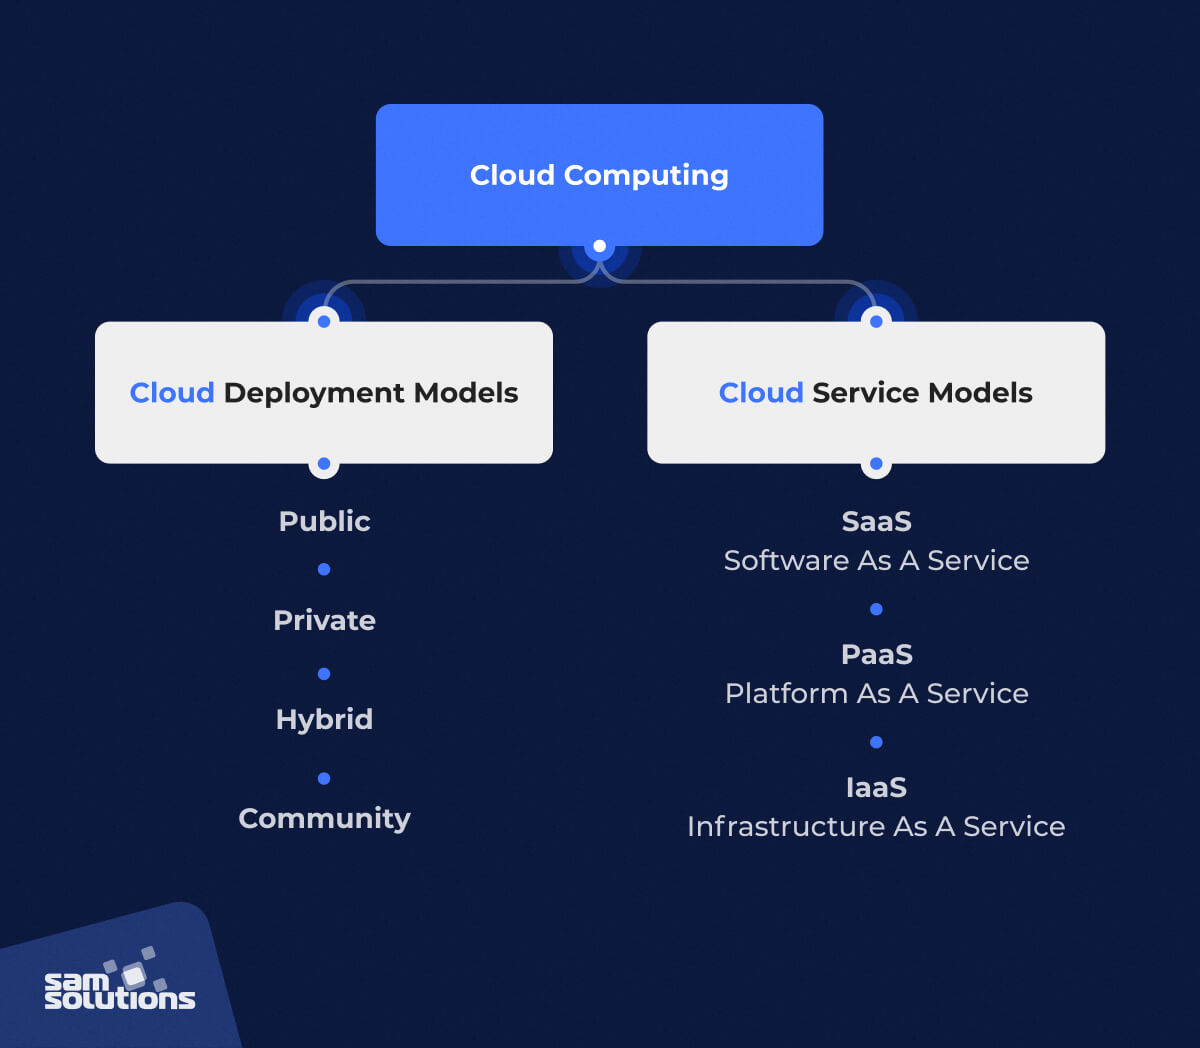 cloud computing models and service types